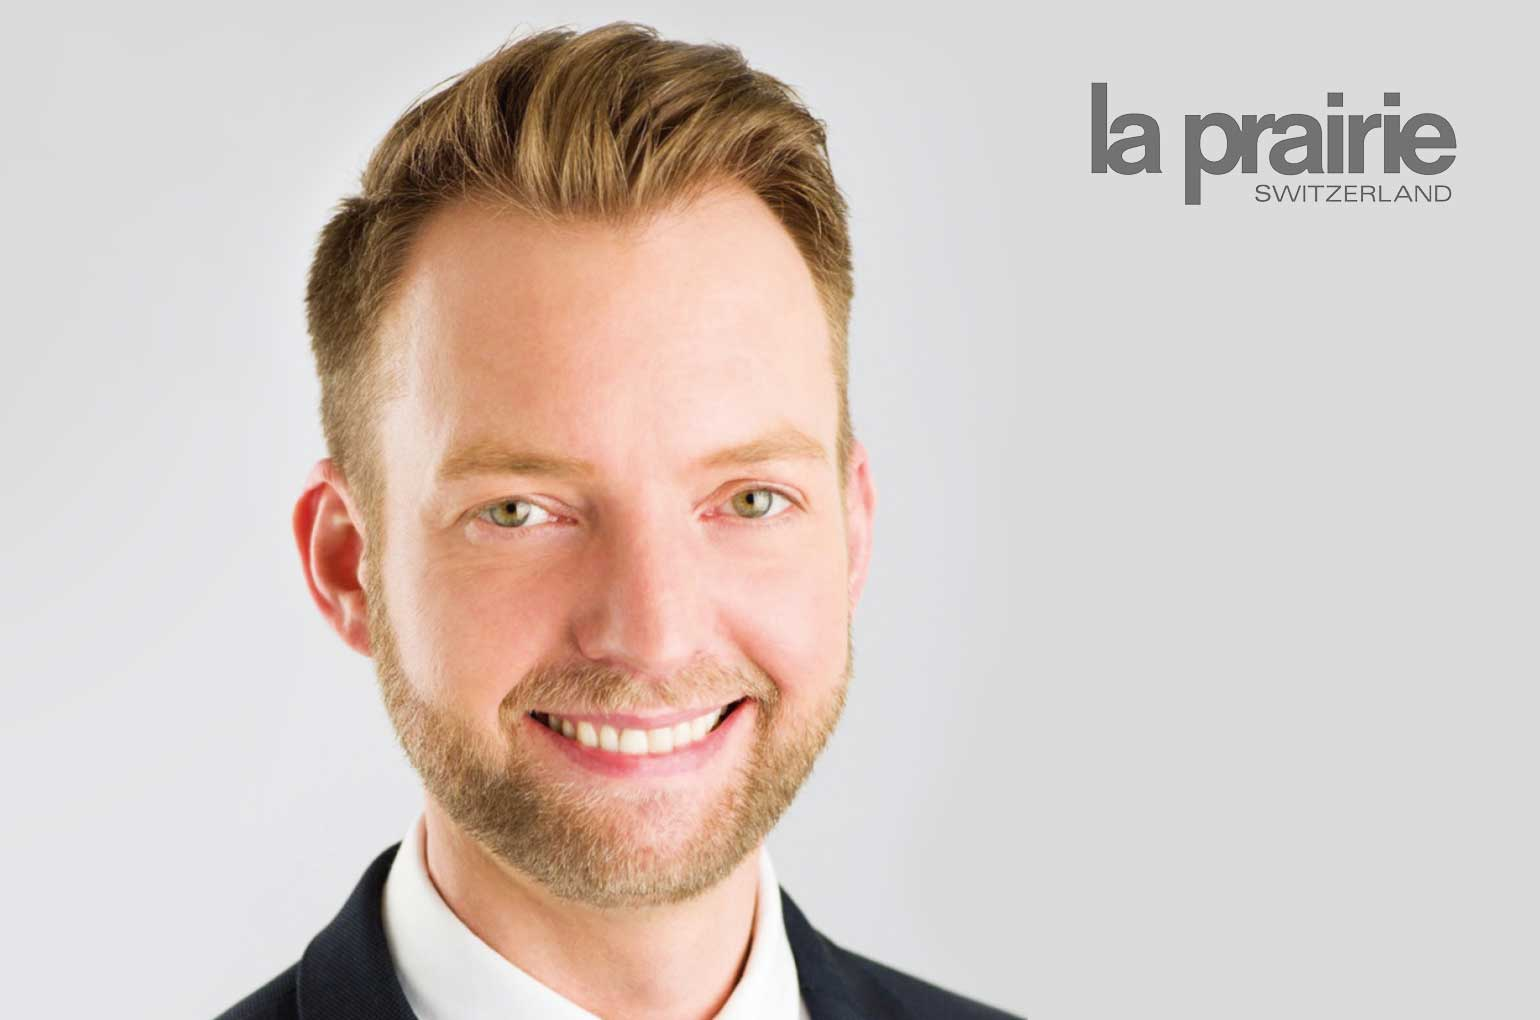 In conversation with La Prairie's Jason Laurence